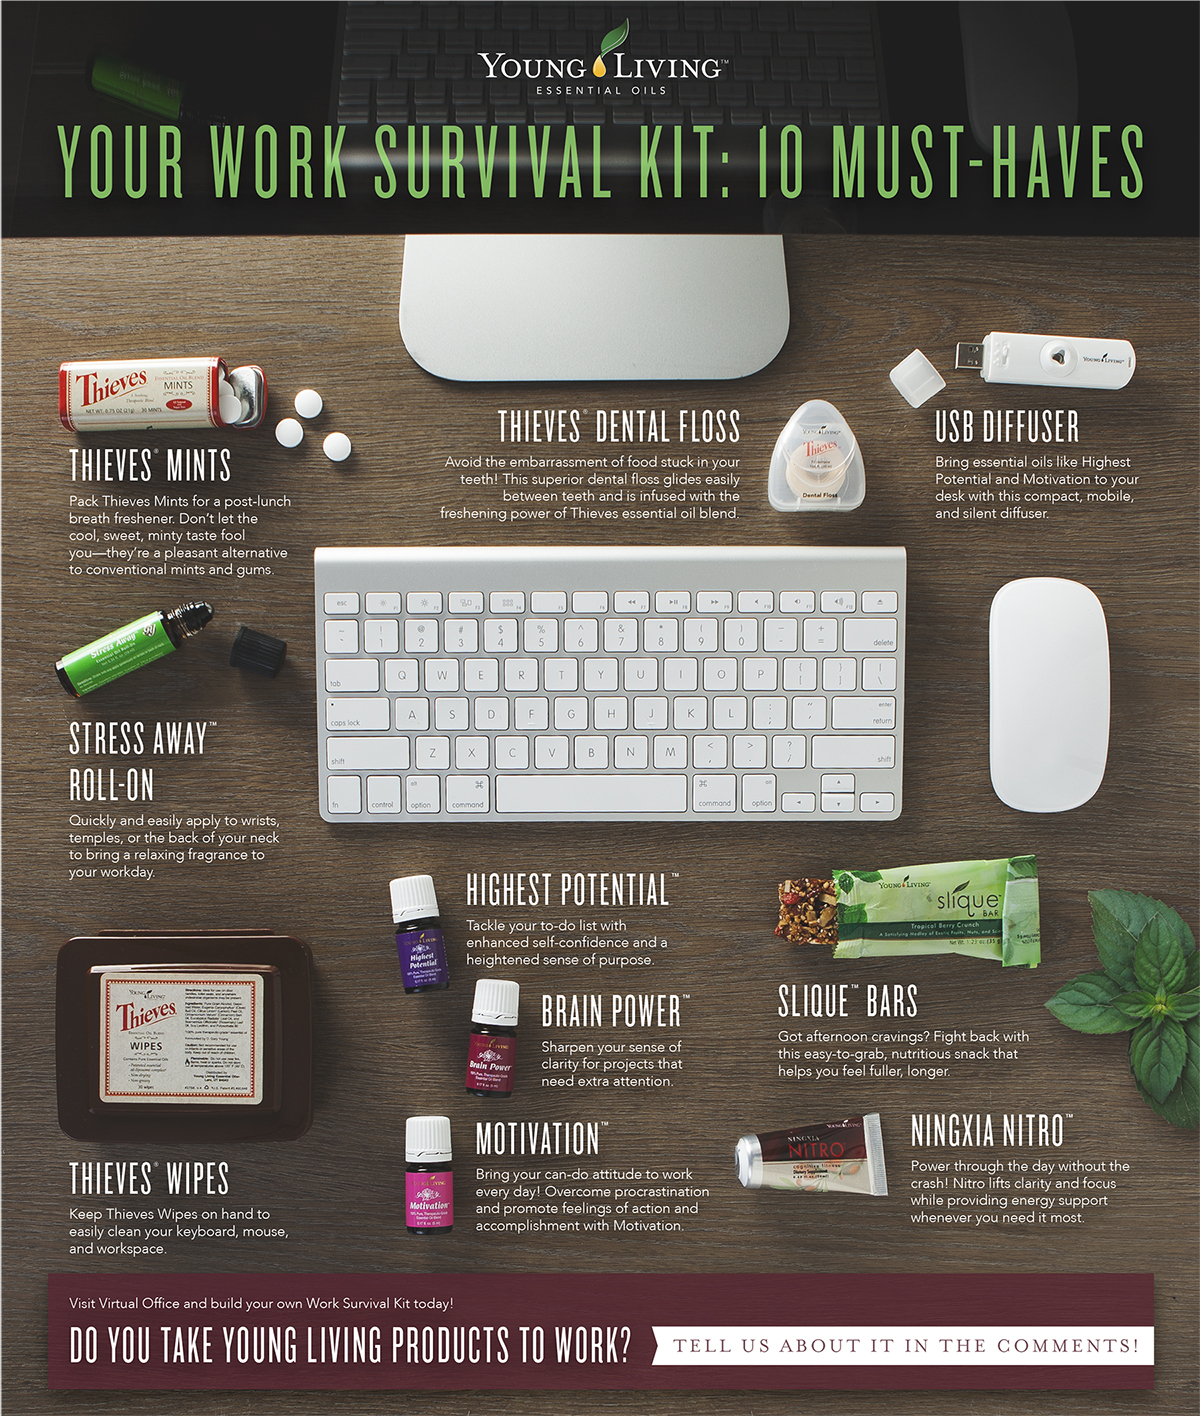 Young Living Essential Oils - Work survival kit - Thieves Mints, Stress Away Roll-On, Thieves Wipes, Highest Potential, Brain Power, Motivation, Slique Bars, NingXia Nitro, Thieves Dental Floss, USB Diffuser